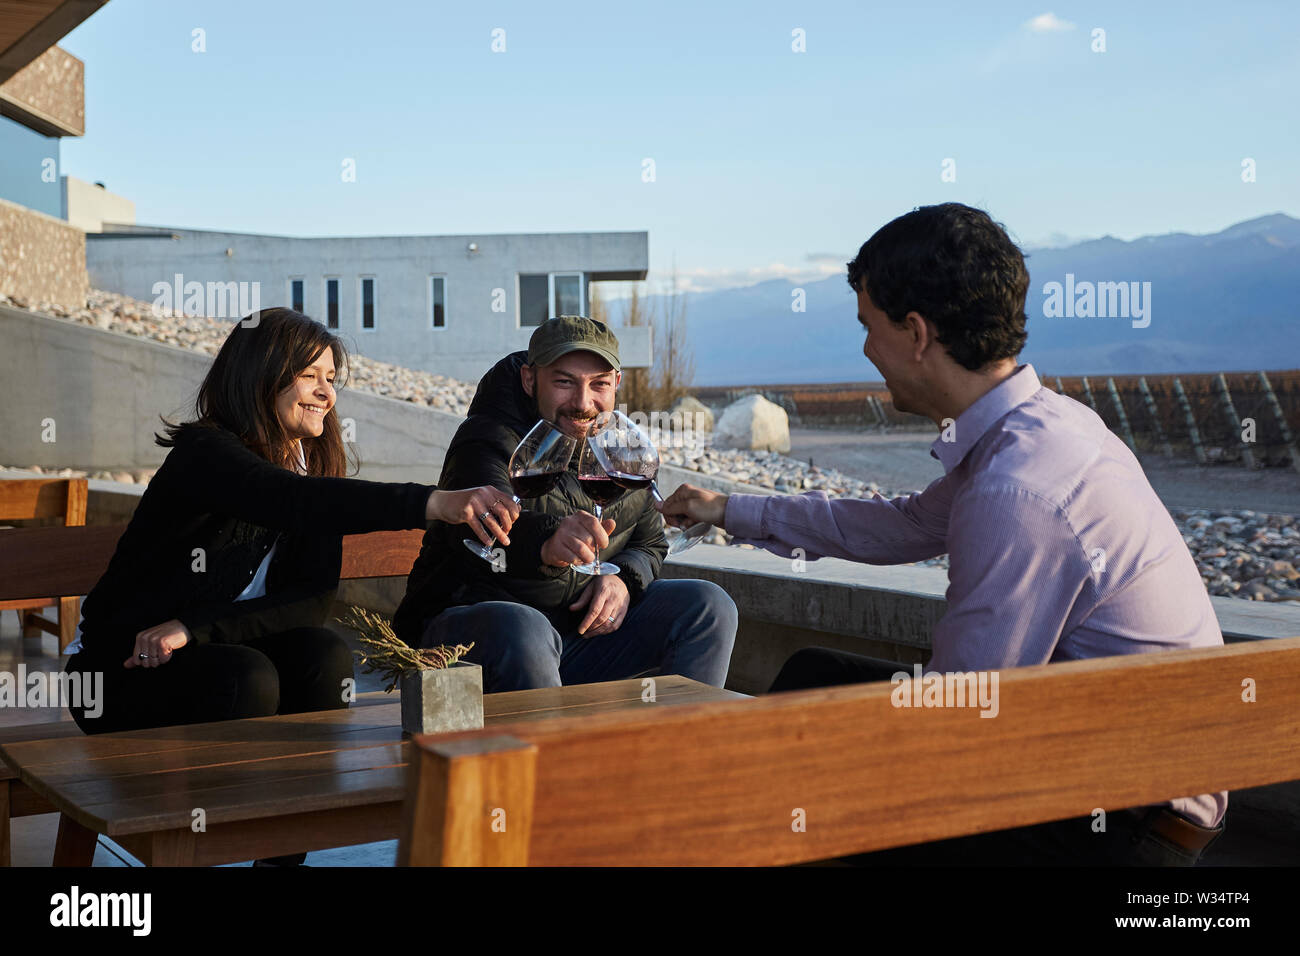 11 July 2019, Argentina, San Carlos: Visitors to Piedra Infinita drink to the vineyards. The Argentinian winery Piedra Infinita of the brand Zuccardi, was awarded by the World's Best Vineyards Academy as the best winery and winery in the world. This award recognizes the best 50 wineries in the world, based on the experience offered to the visitor. Photo: Marcelo Aguilar/dpa - Stock Image